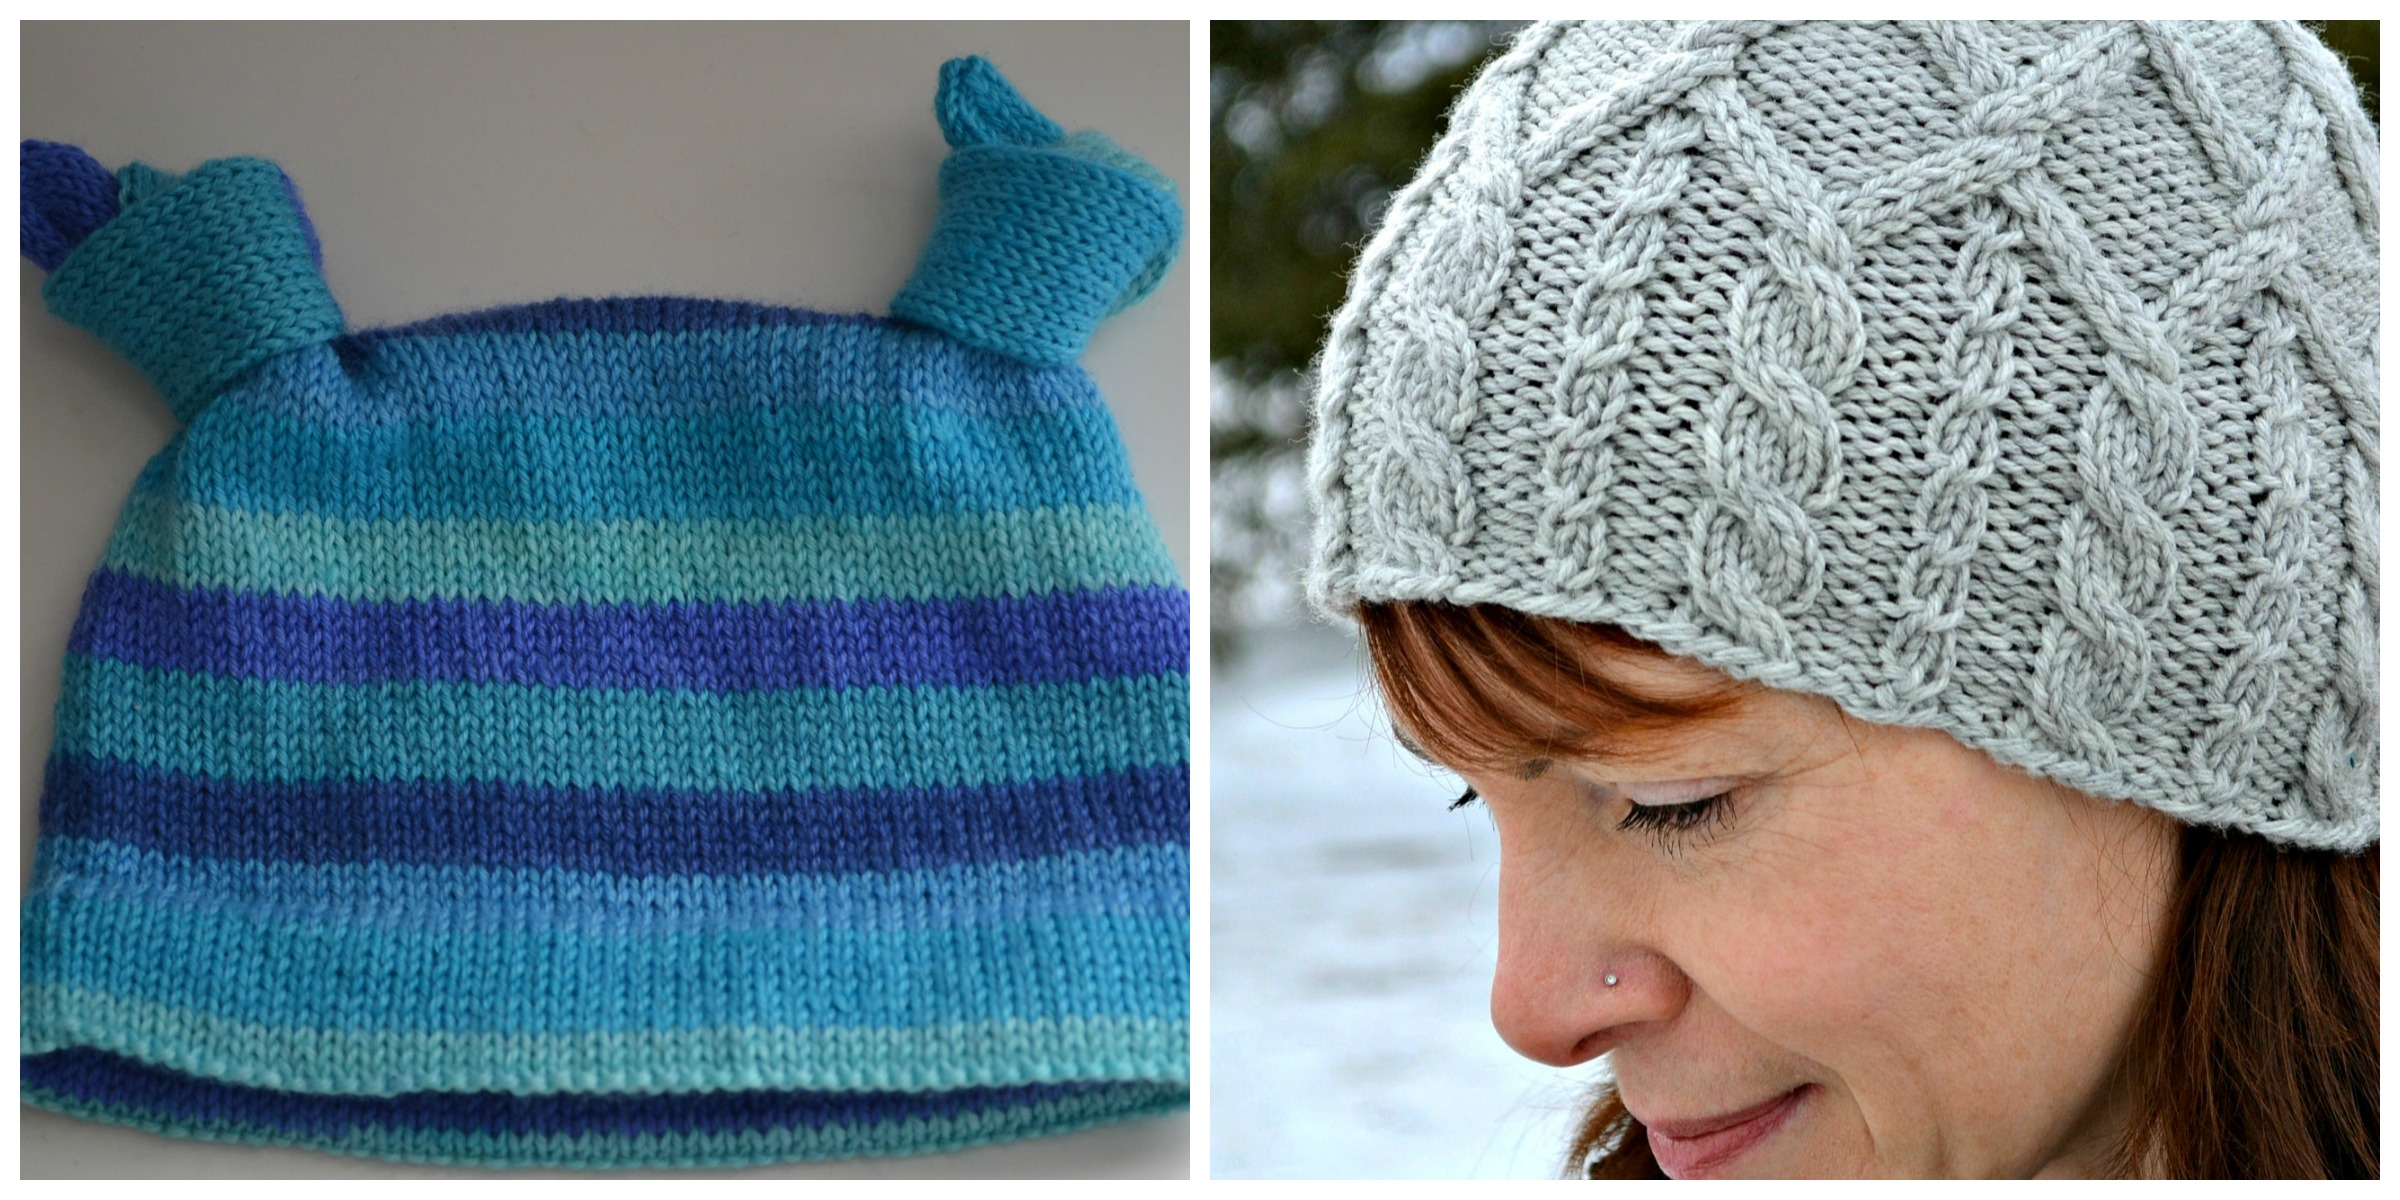 Knitting Knotty : Knotty baby hat and merrick cabled are now on knit